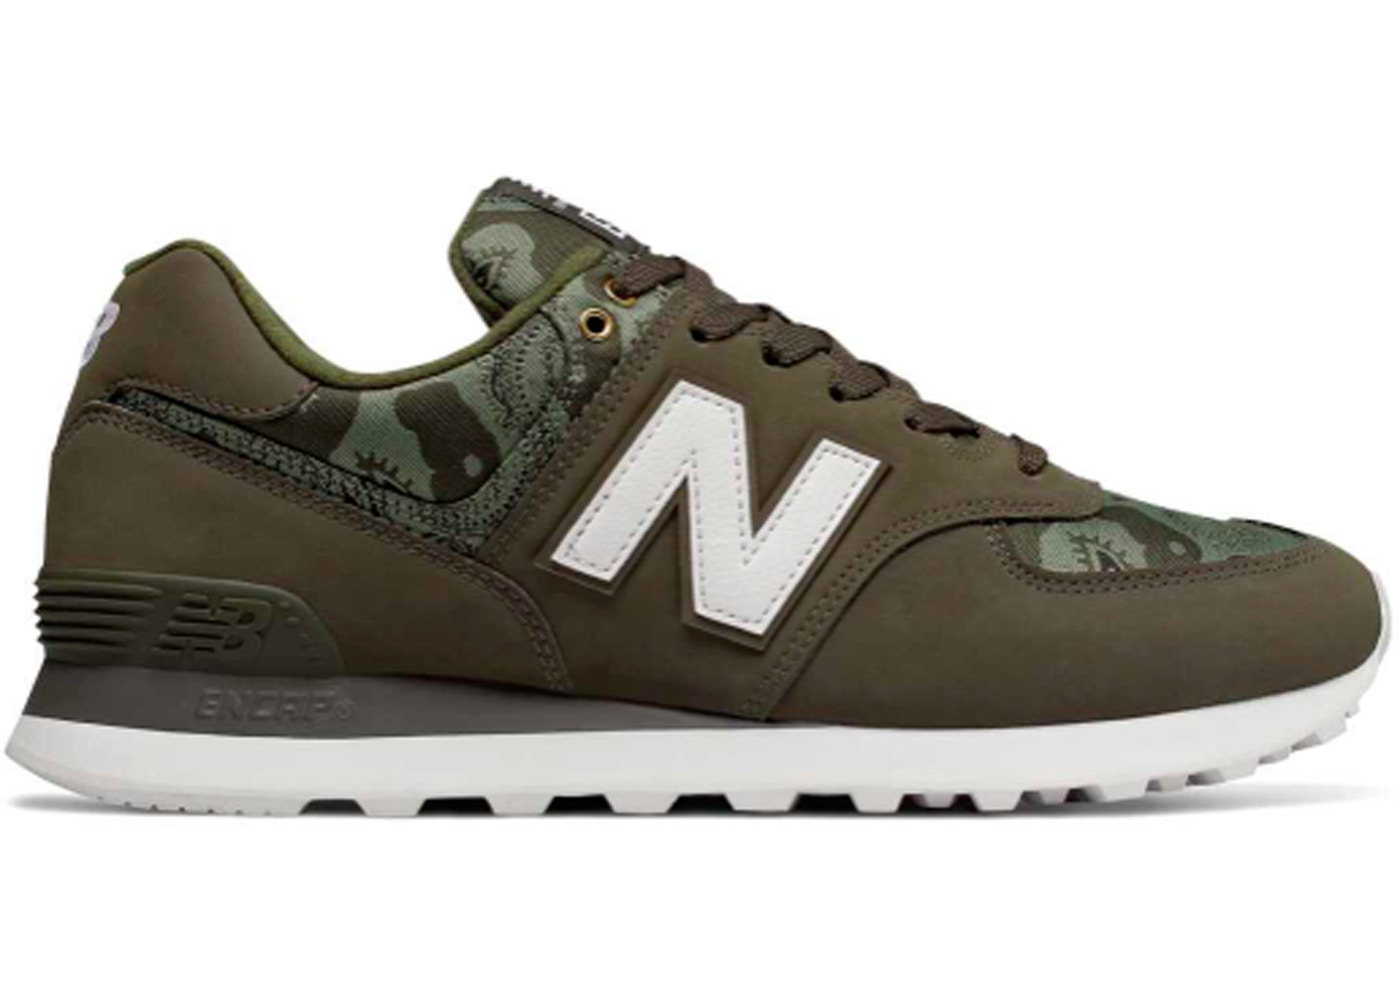 biggest discount new high release date: New Balance 574 Paisley Camouflage